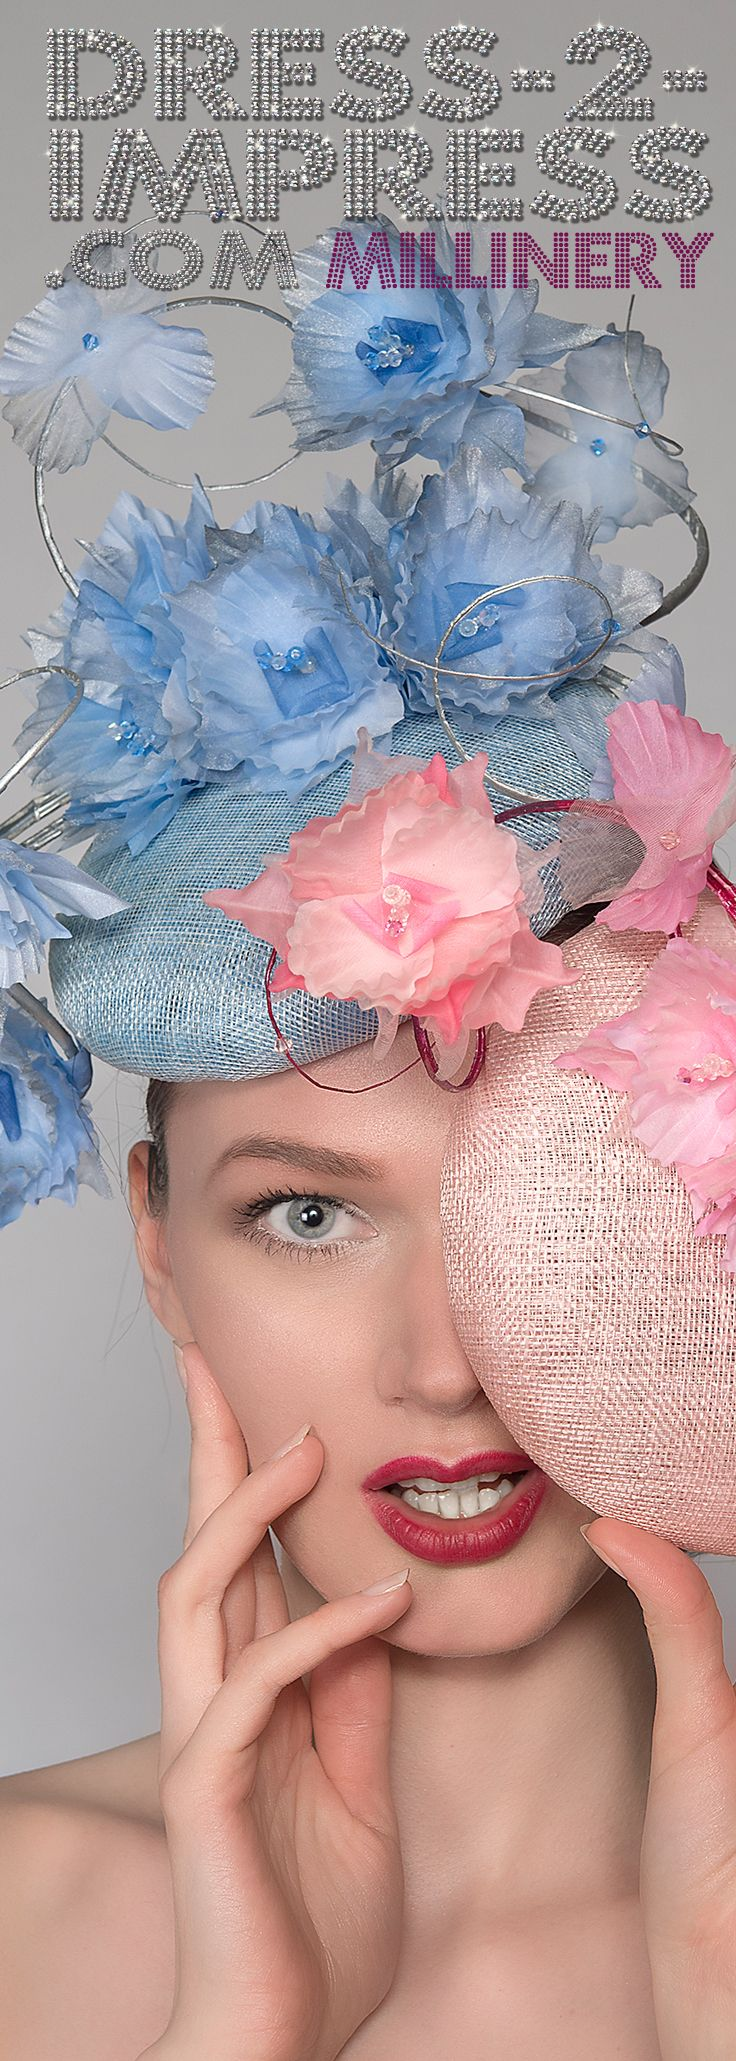 Handmade Designer Hats and Headpieces for Royal Ascot, Kentucky Derby, Dubai World Cup, Melbourne Cup and other Races, Mother of the Bride, or Weddings. Couture Millinery. Amazing Hats. #millinery #bighats #designerwear #fashion #fashionista #royalascot #kentuckyderby #racingfashion #fashiononthefield #hats #fascinators #fashionaddict #tocado